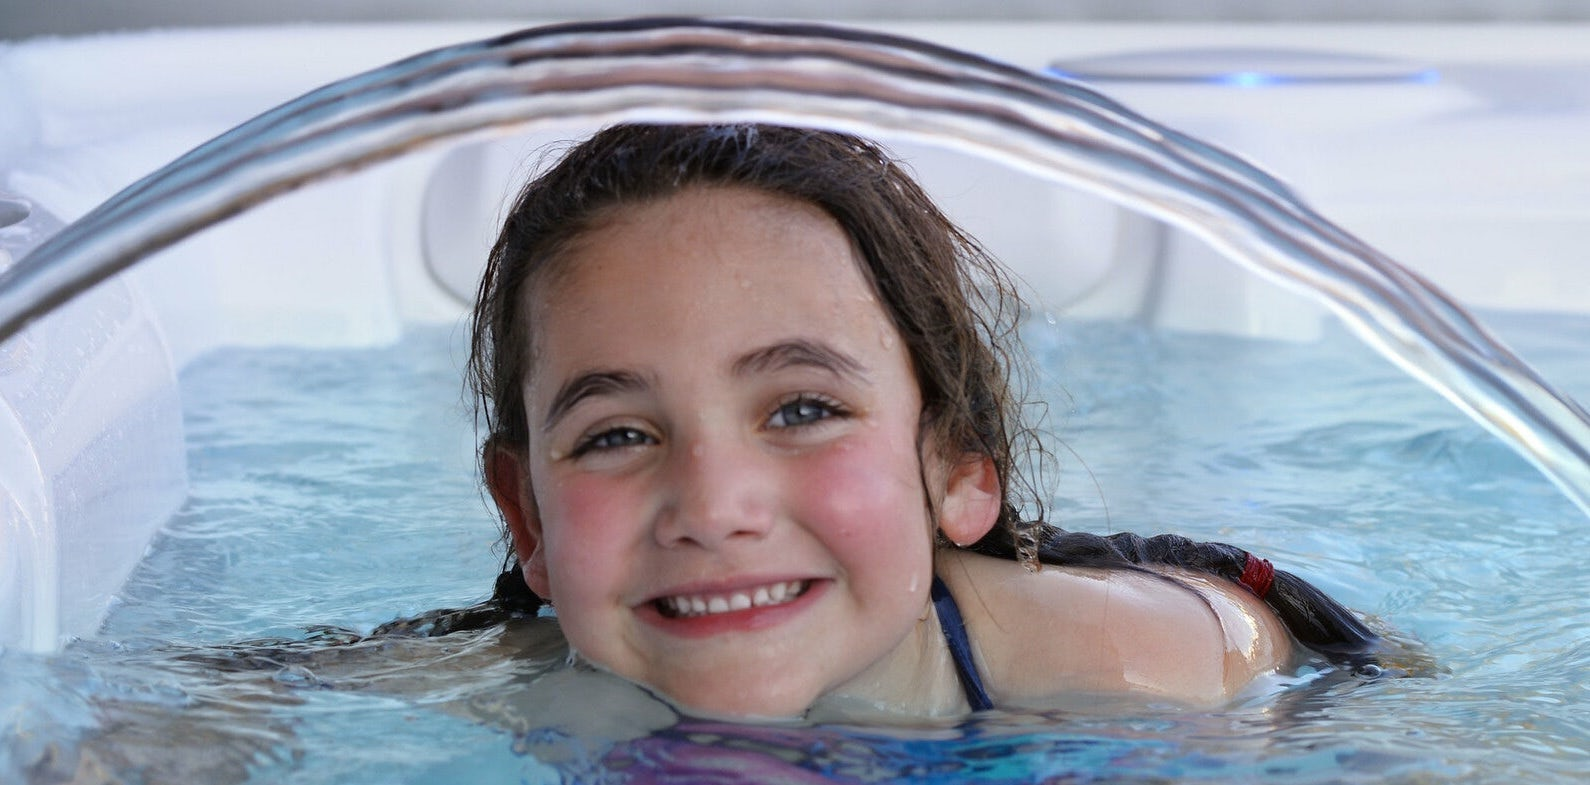 Smiling young girl in a hot tub with a water fountain going over her head.